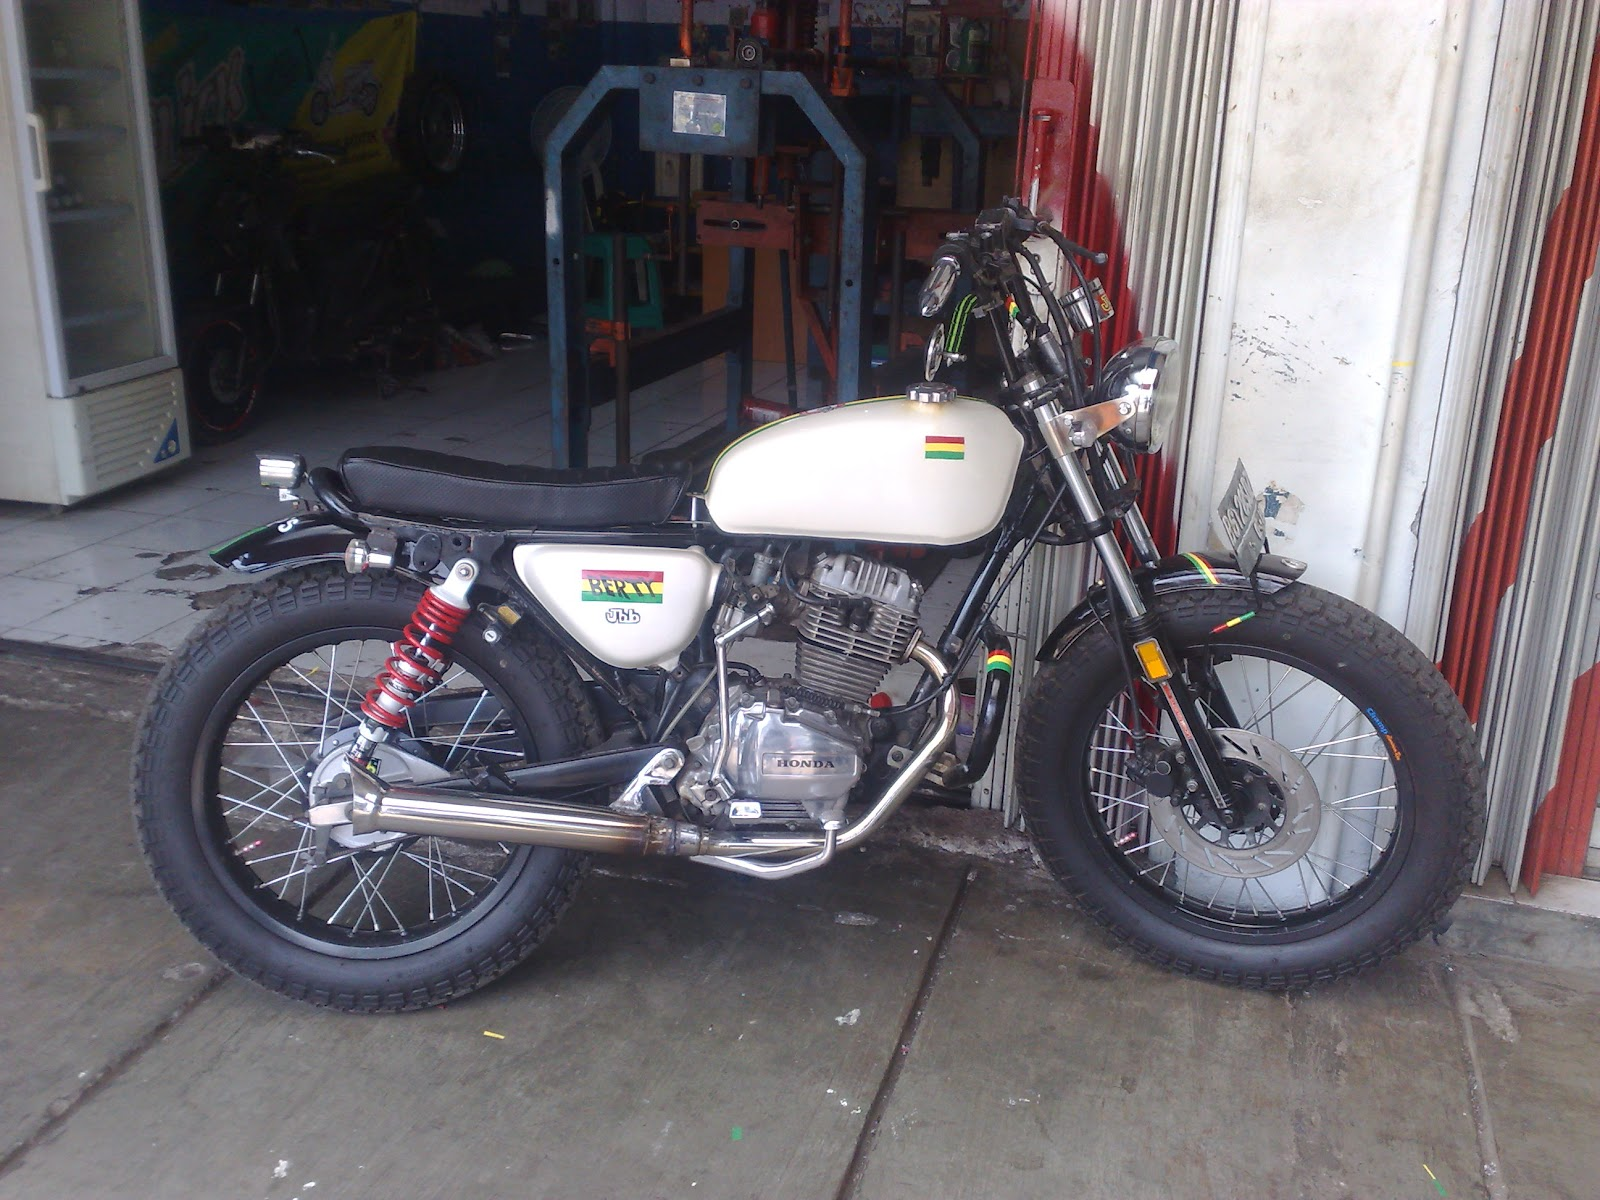 Home » Without category » Modifikasi motor jap style gl max serpong